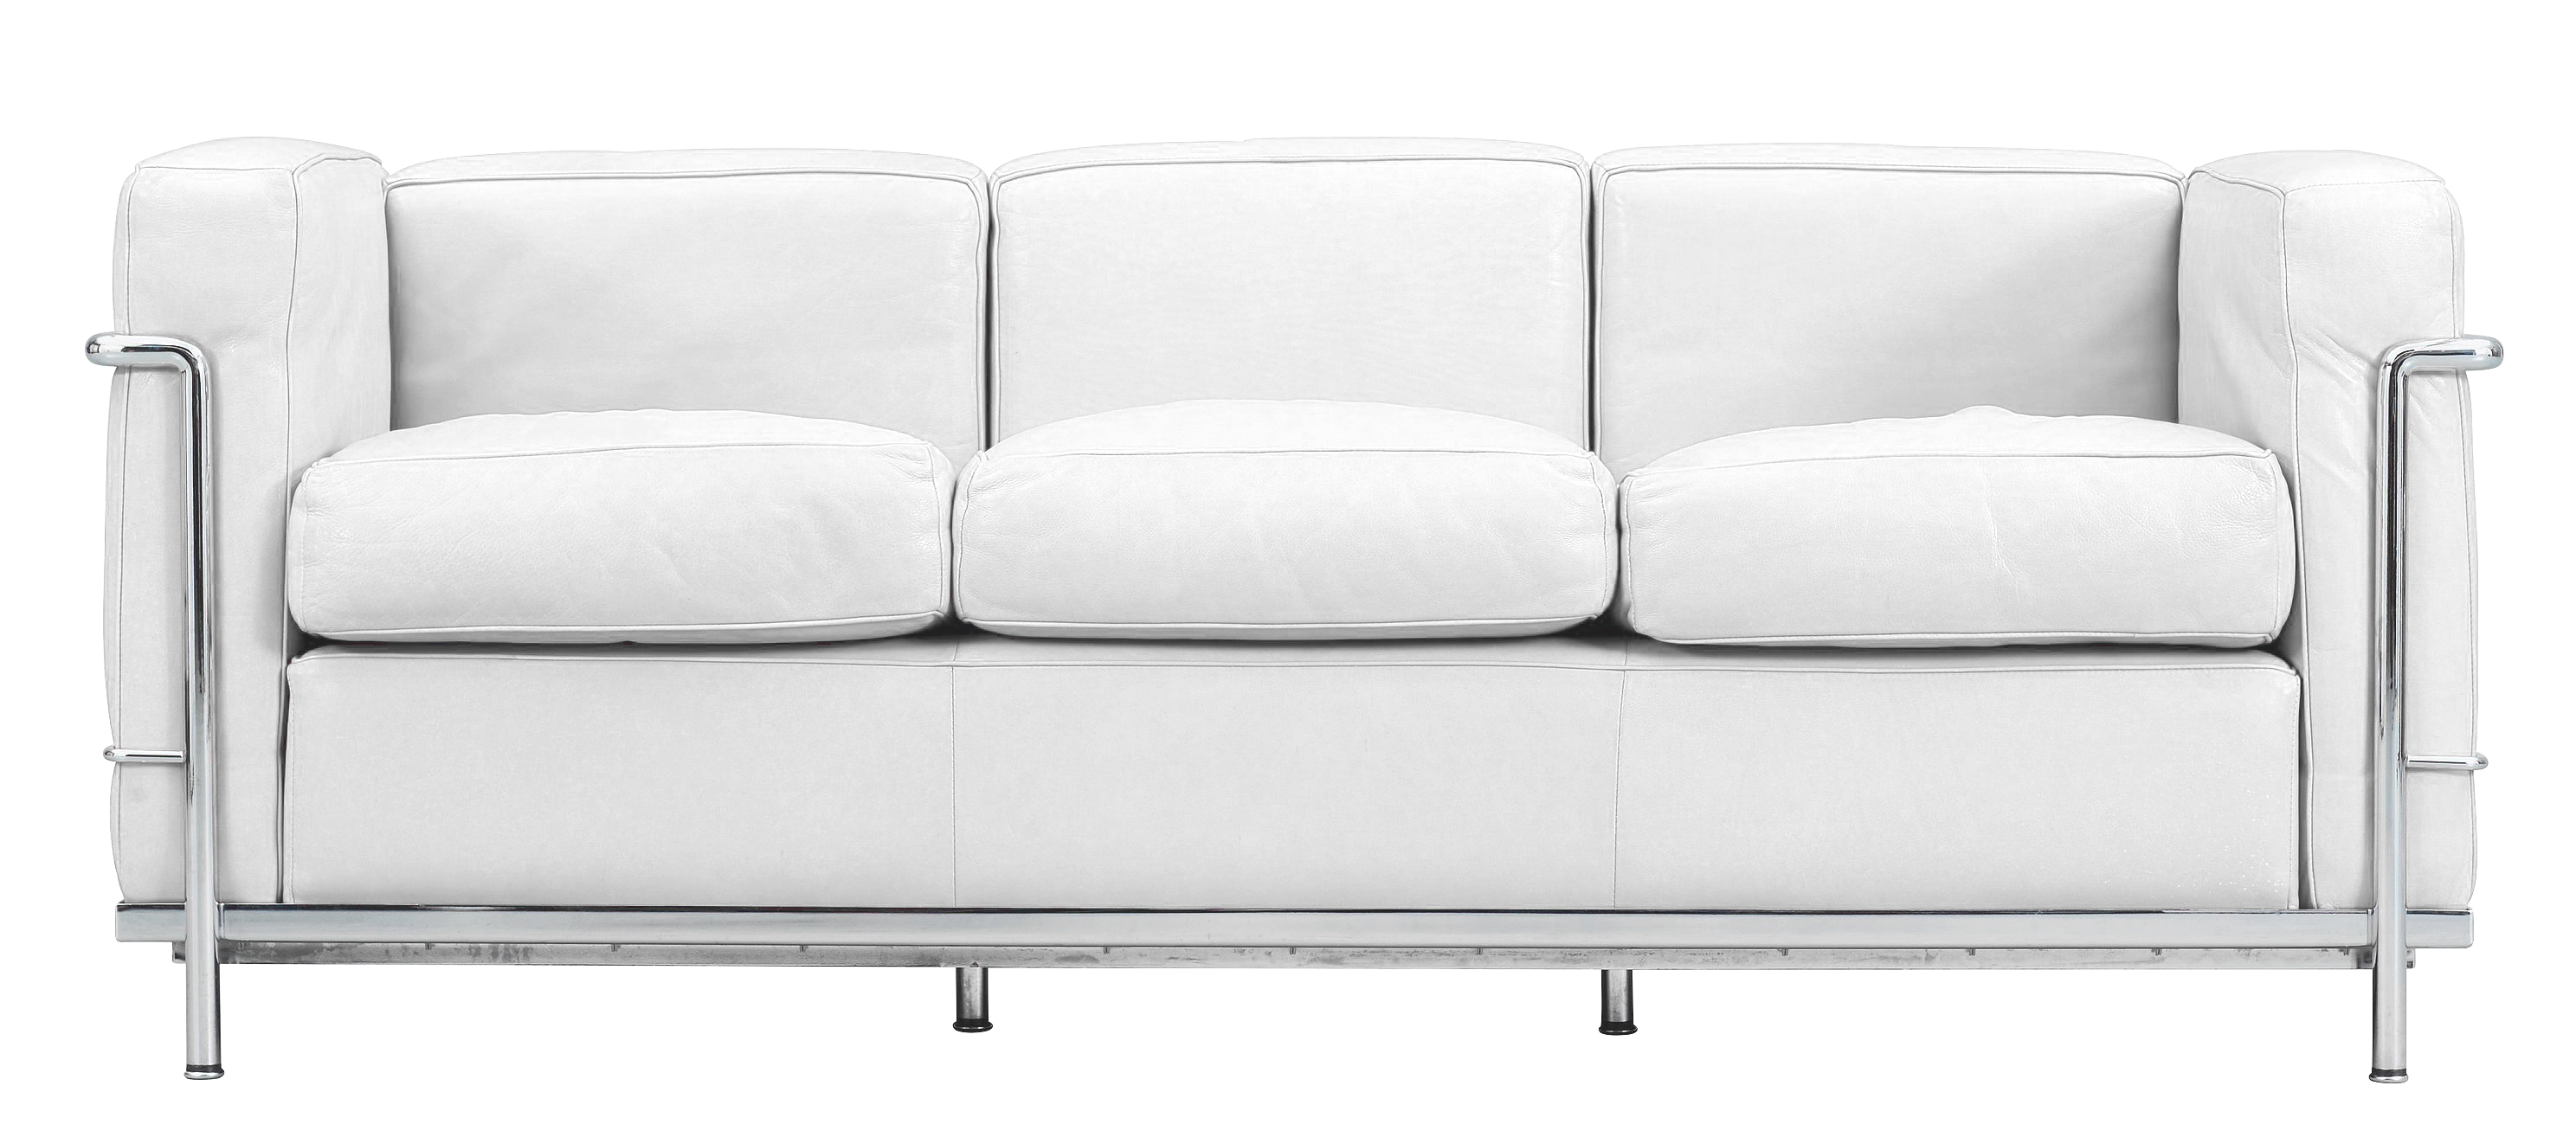 Couch png. White leather lobby picture